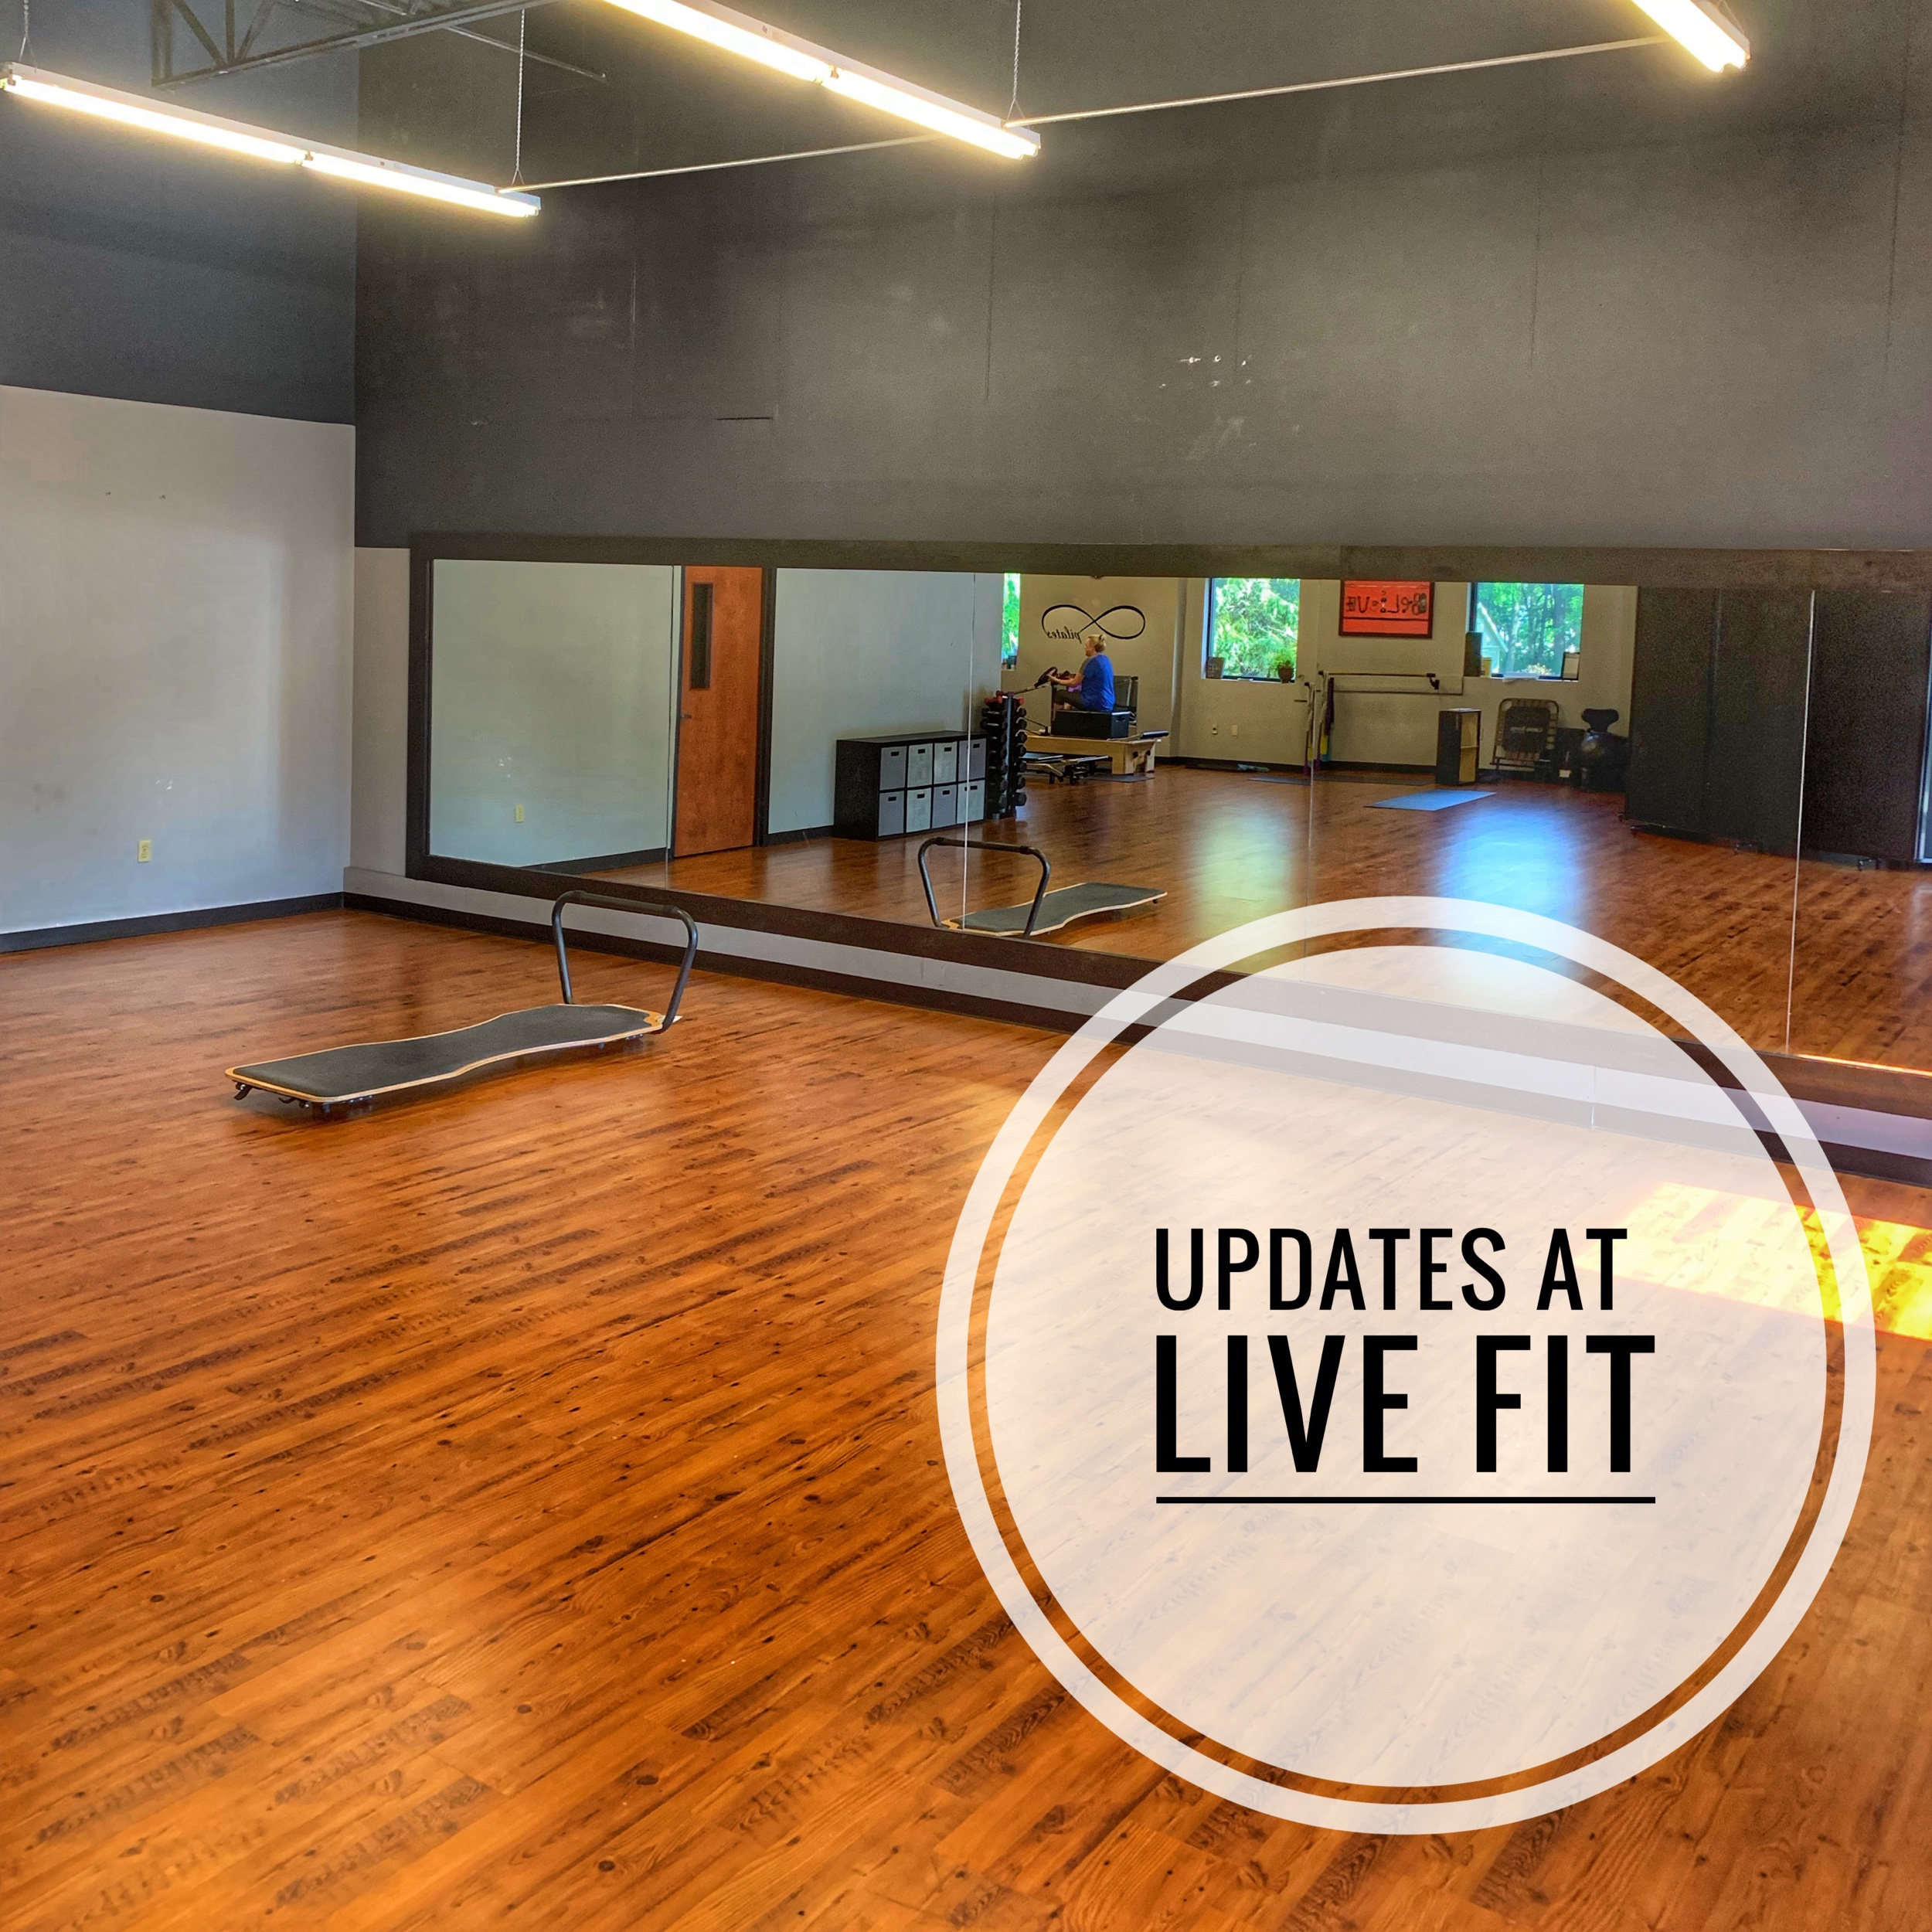 Updates at Live Fit